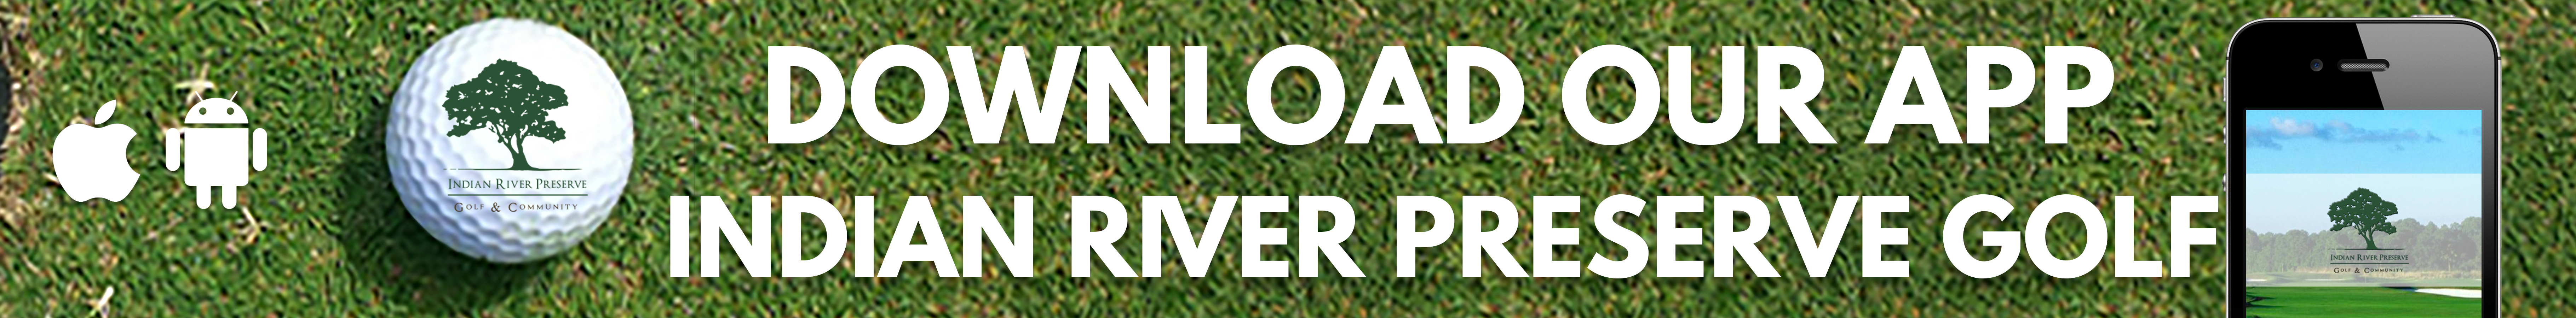 Download our Indian River Preserve Golf App